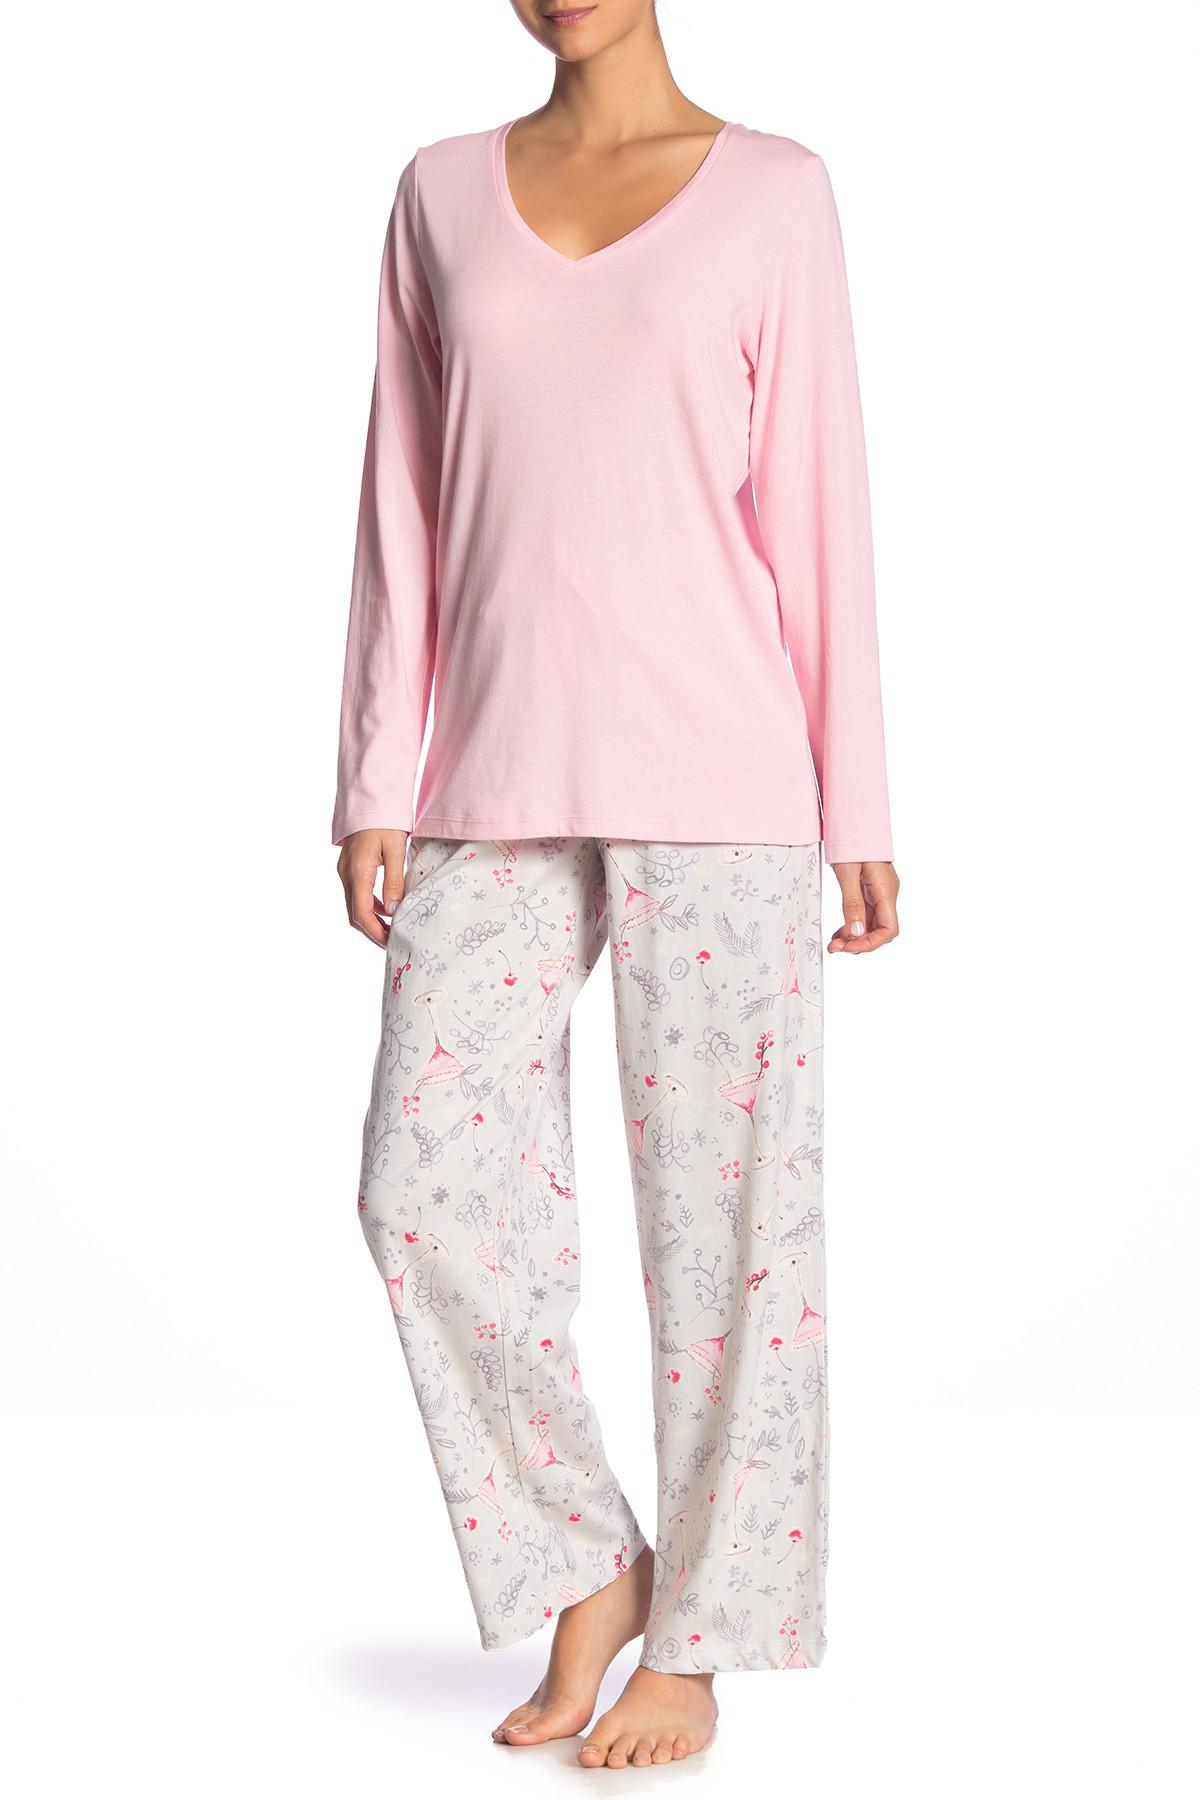 fadf889851 Lyst - Hue Holiday Sparkles 2-piece Pajama Set in Pink